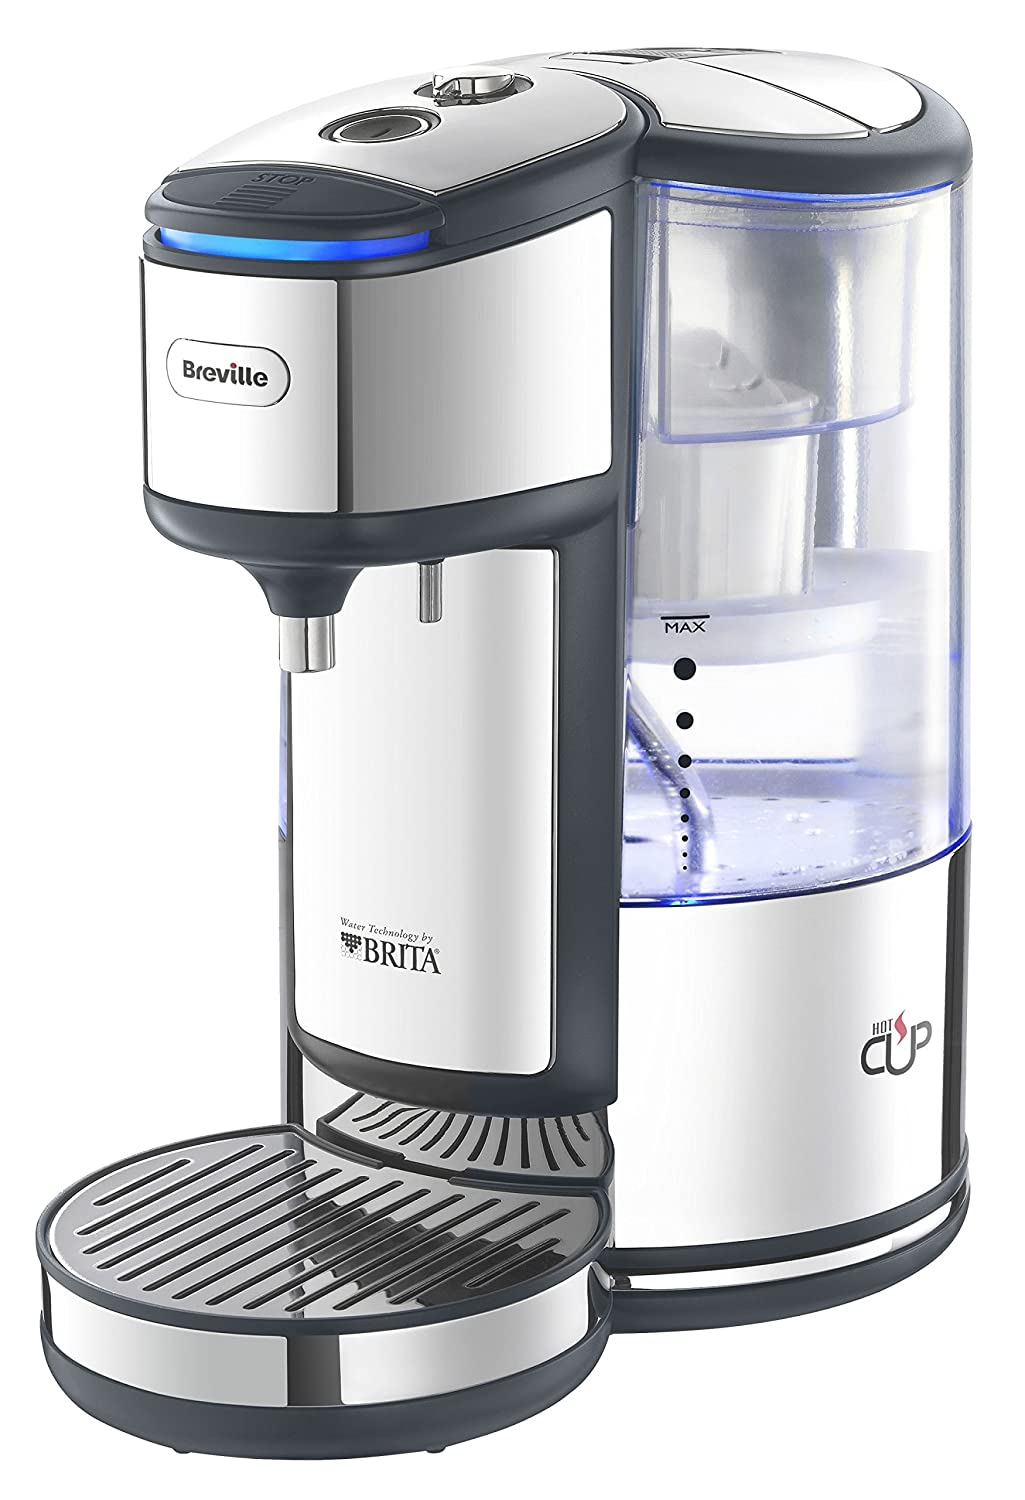 Breville BRITA HotCup Hot Water Dispenser with Variable Dispense, 1.8 Litre, Stainless Steel